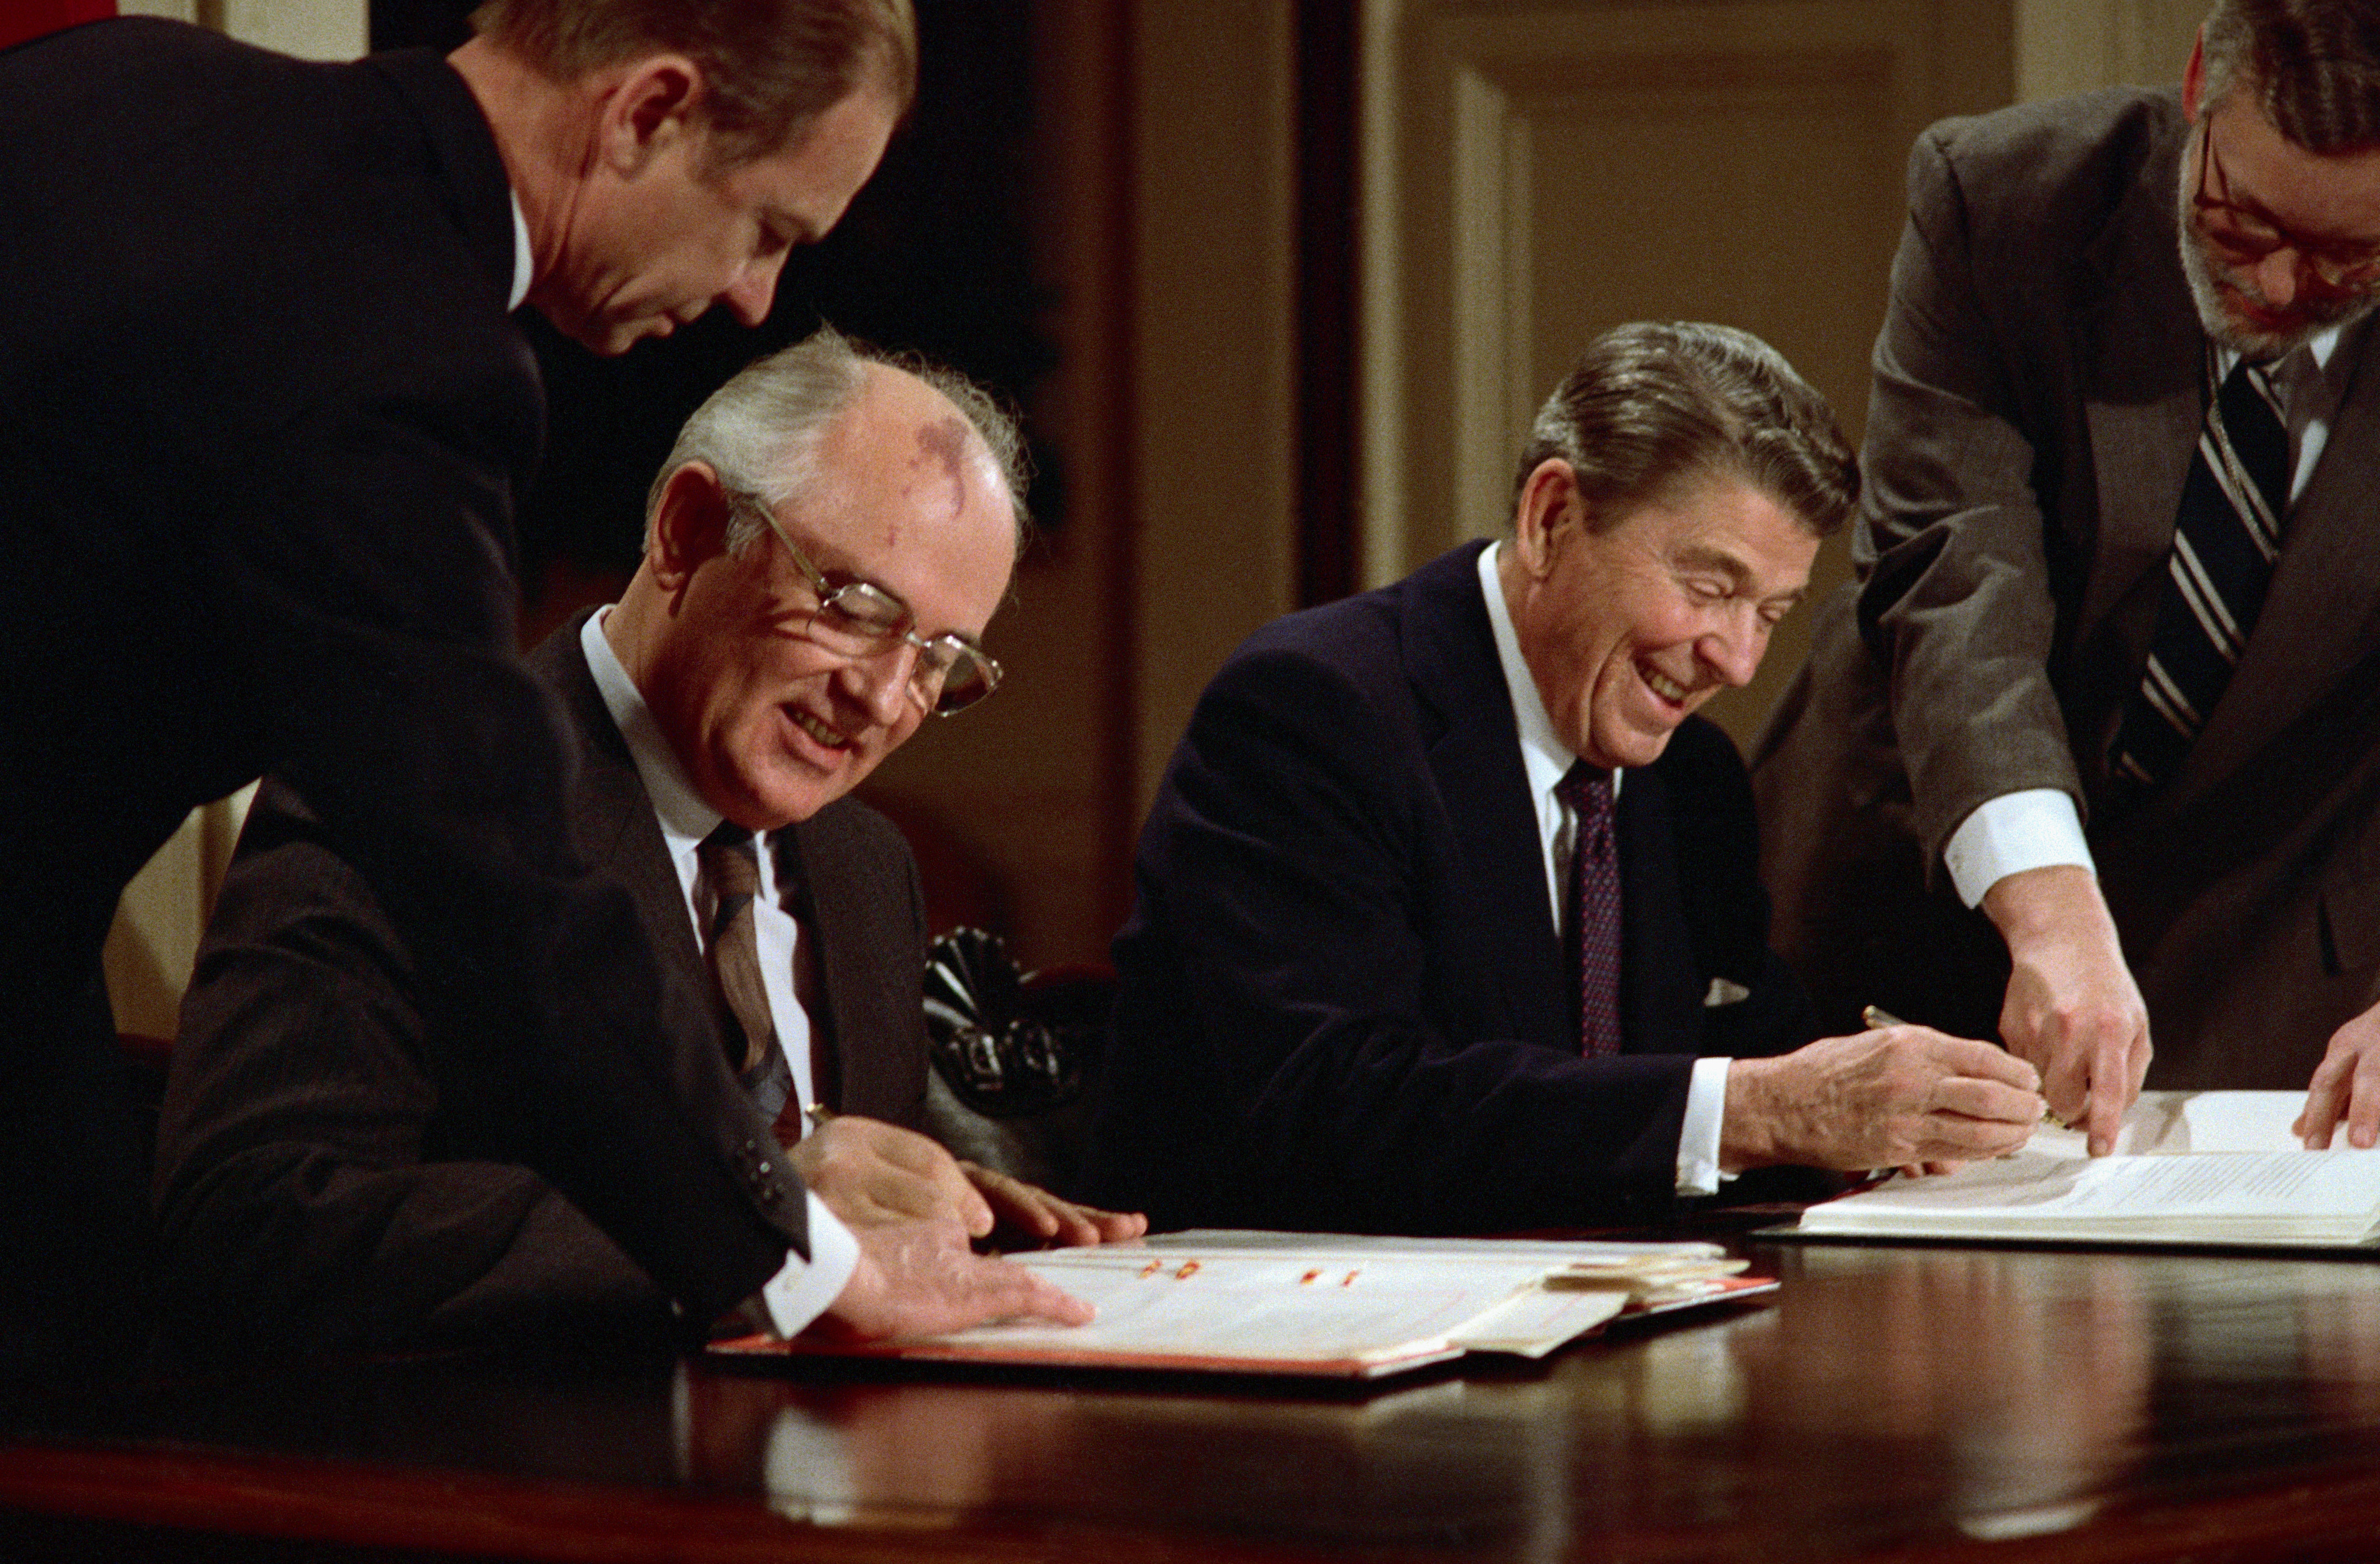 reagan and gorbachev pre gorbachev soviet union Perestroika gorbachev workbook reagan uploaded by to begin the study and analysis of the reform proc ess launched by mikhail gorbachev in the soviet union.